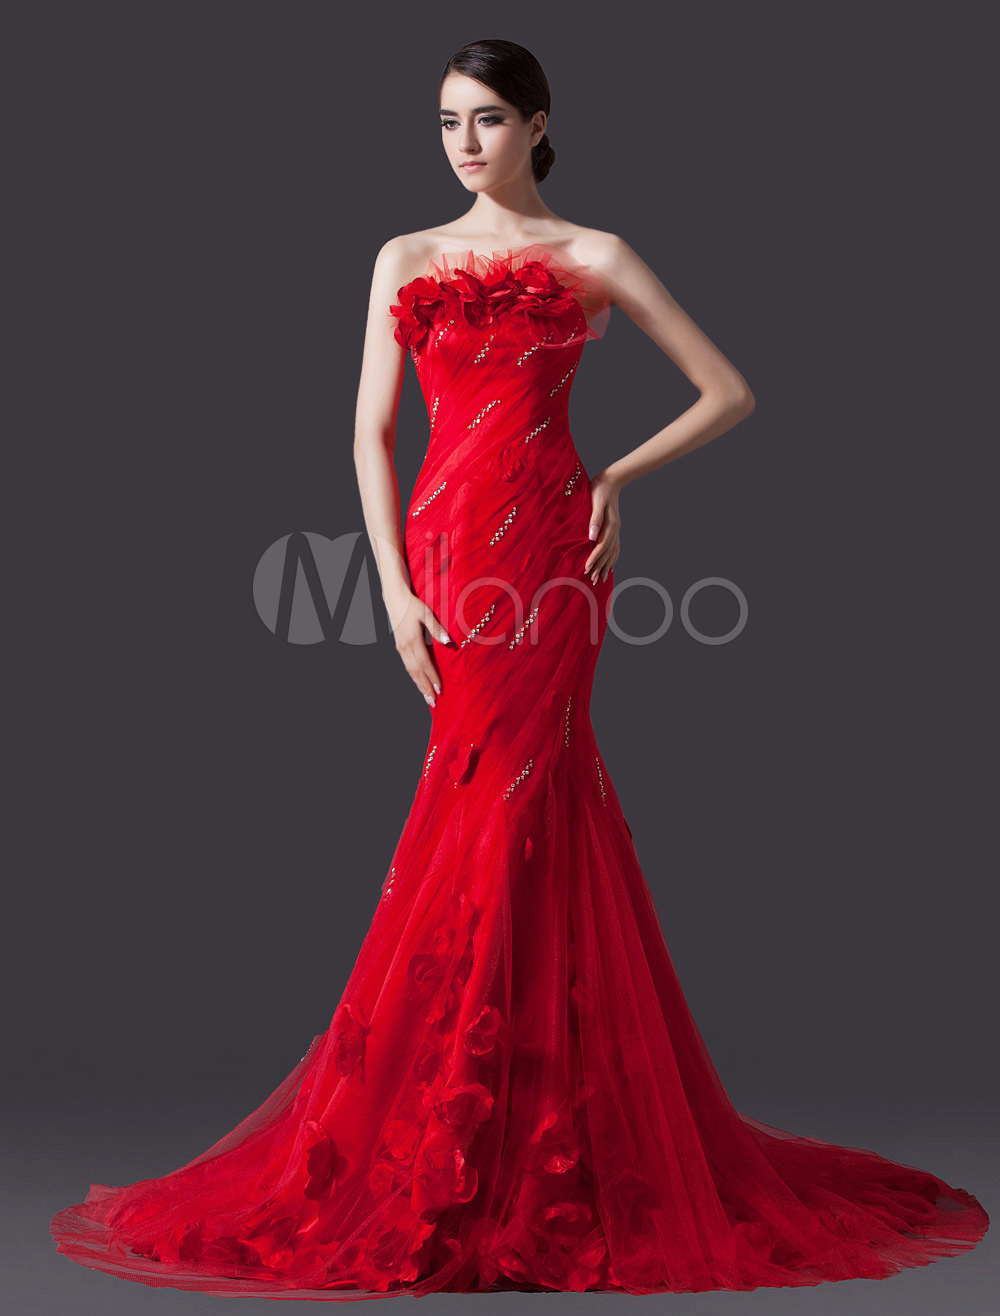 Red Mermaid Strapless Flower Court Train Bridal Wedding Gown